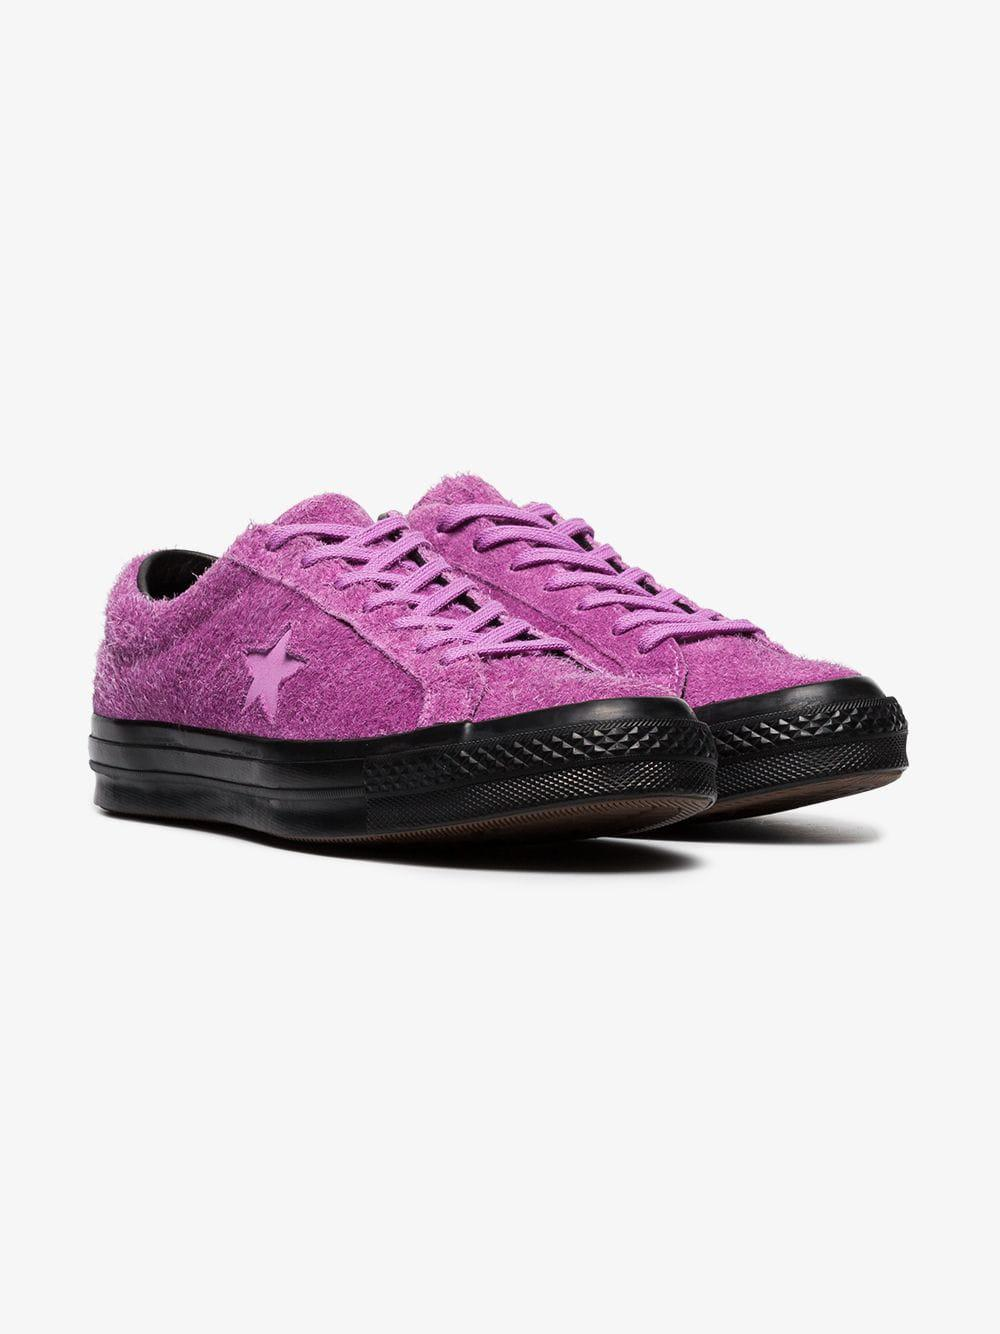 e4de00a8cea8 Lyst - Converse Purple One Star Fuzzy Sneakers in Purple for Men ...